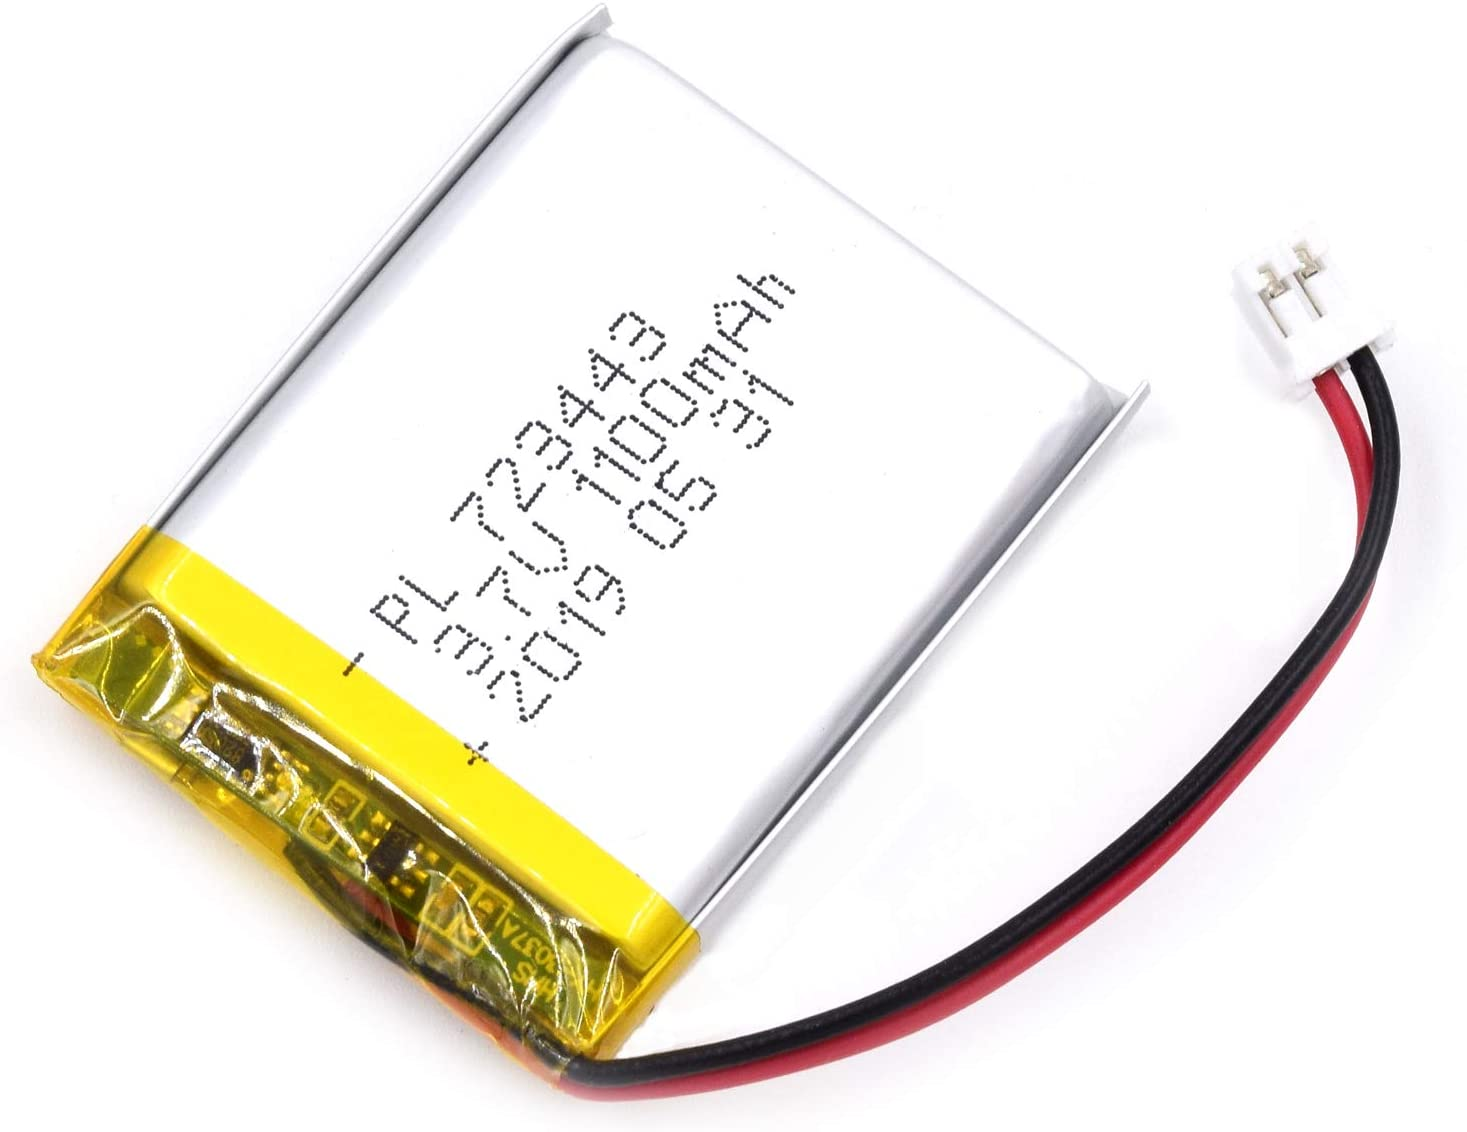 AKZYTUE 3.7V 1100mAh 723443 Lipo Battery Rechargeable Lithium Polymer ion Battery Pack with JST Connector